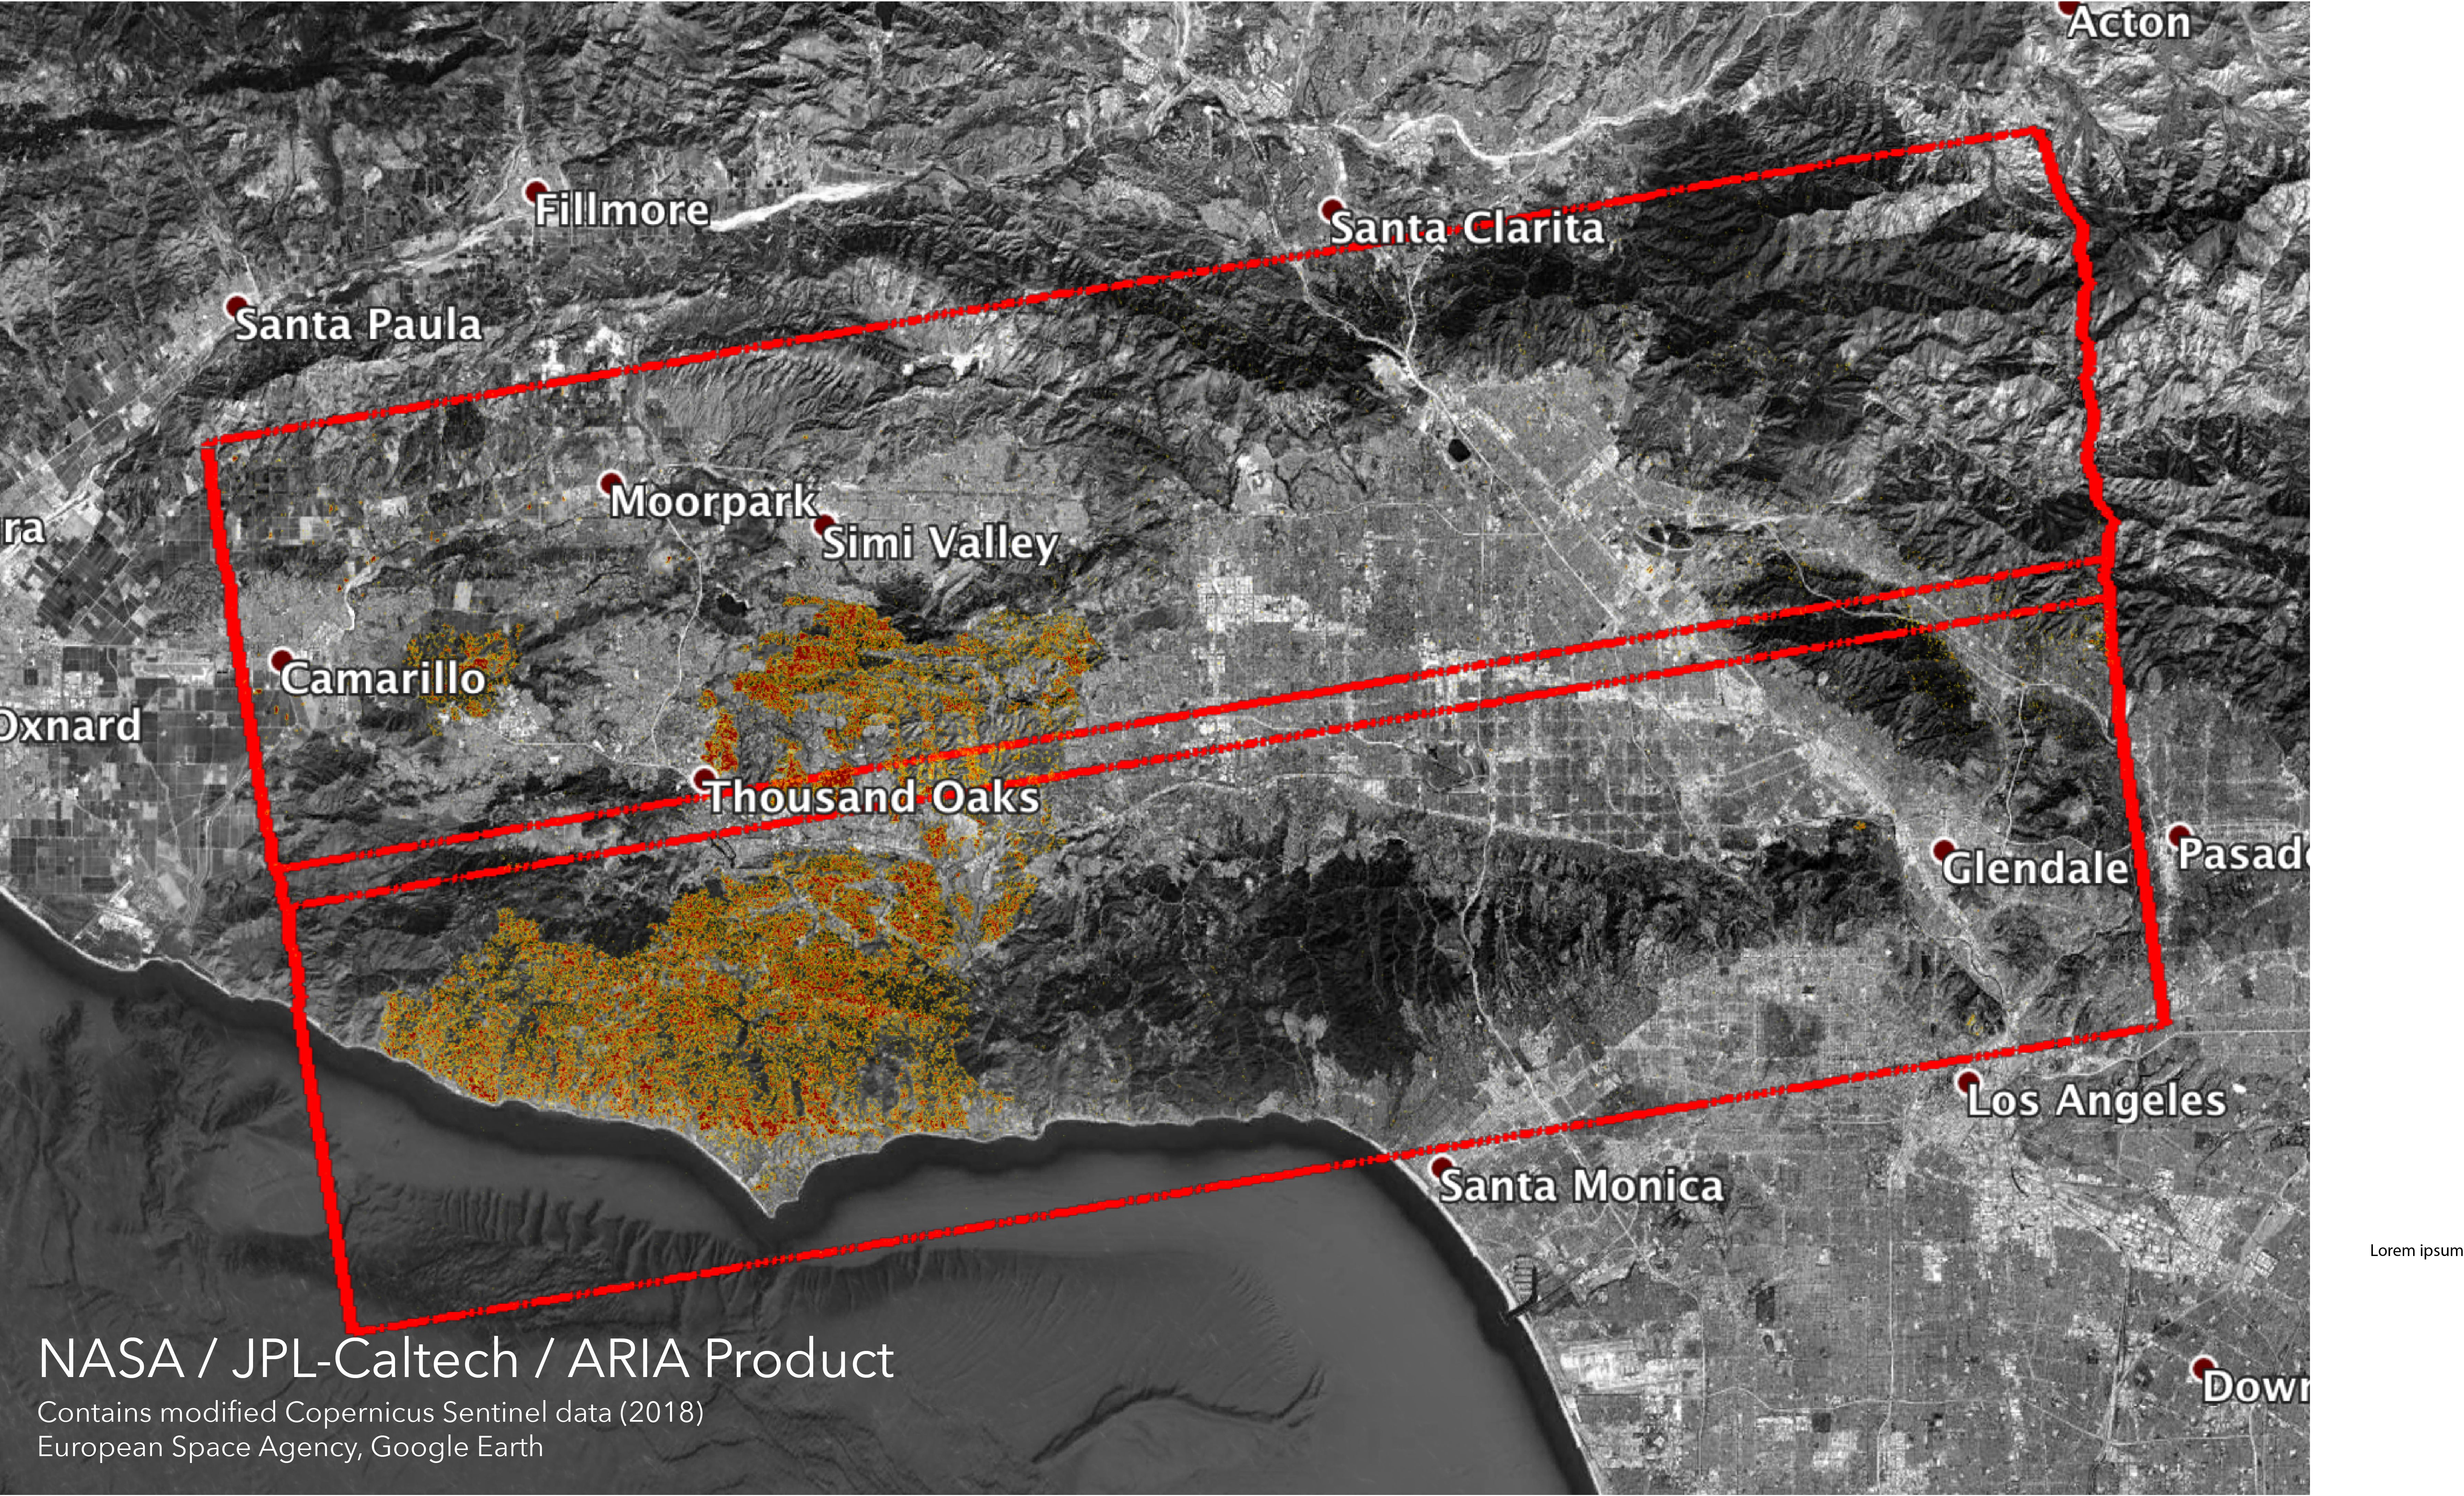 Woolsey Fire - ARIA Damage Proxy Map v0.5 | NASA Earth ... on california powerhouse fire map, california fire area, california fire zone map, california interstate map and towns, california state map with cities and towns, california fire history map, calfire google, california fires map oregon, california active fires map, california earthquake fault line map,